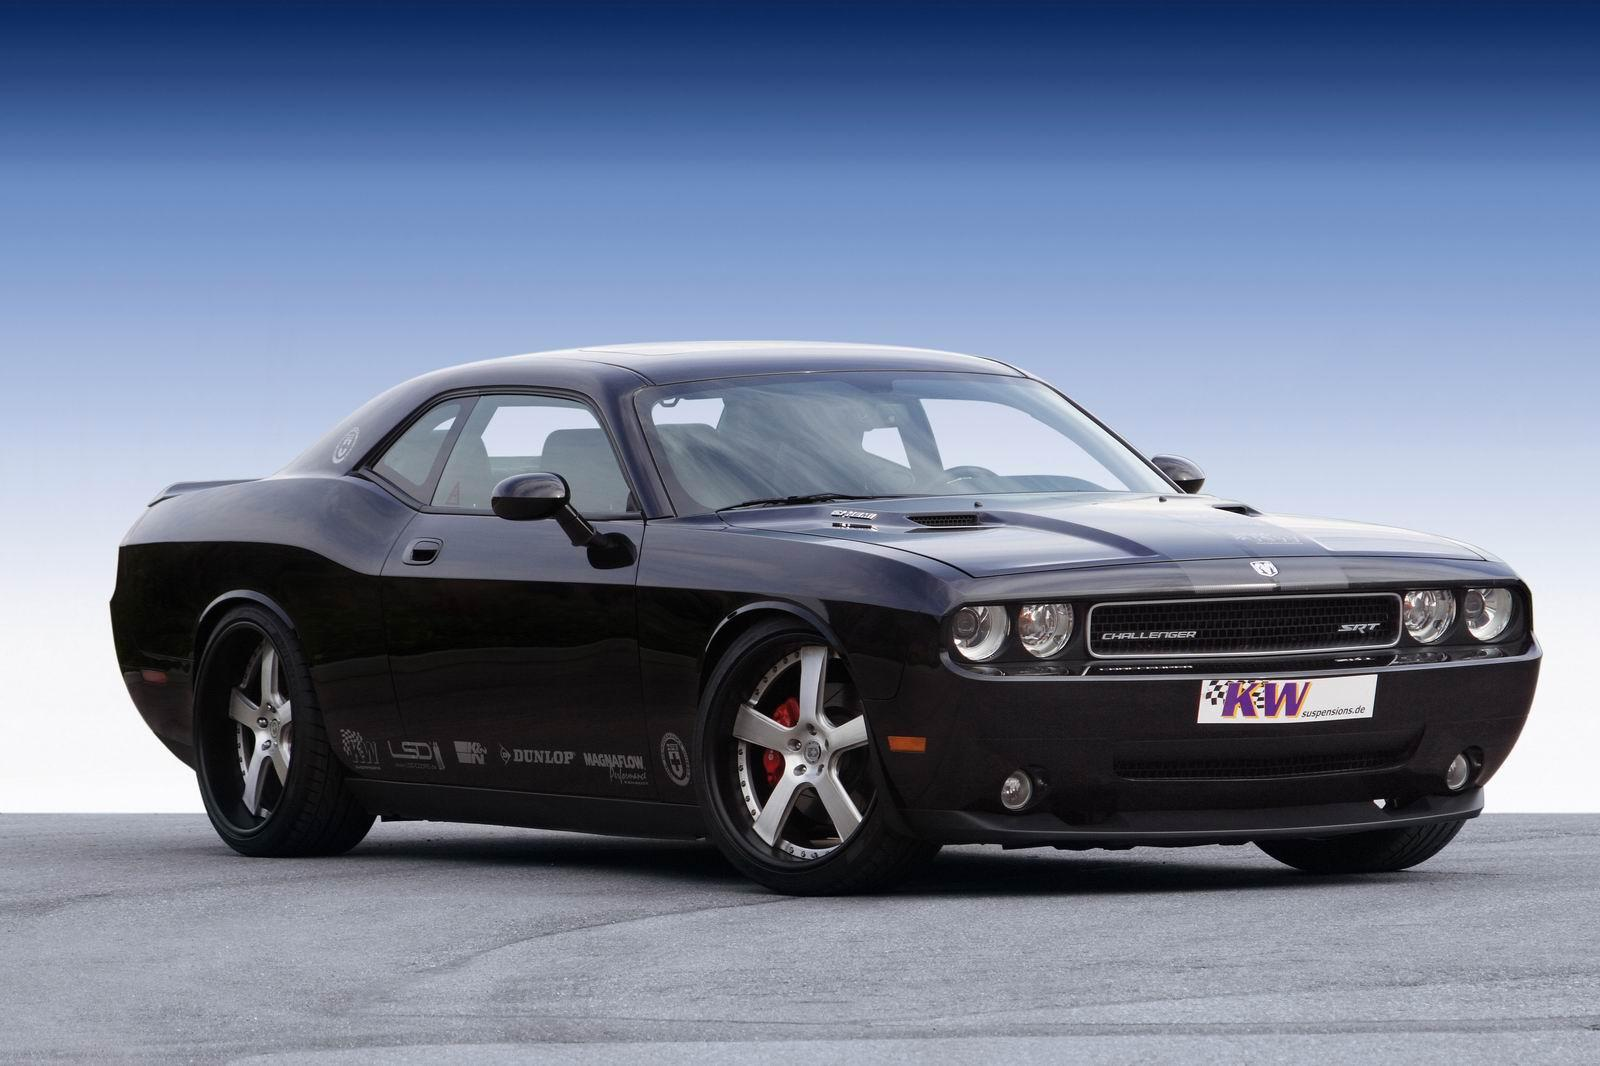 dodge challenger srt8 by kw car news. Black Bedroom Furniture Sets. Home Design Ideas